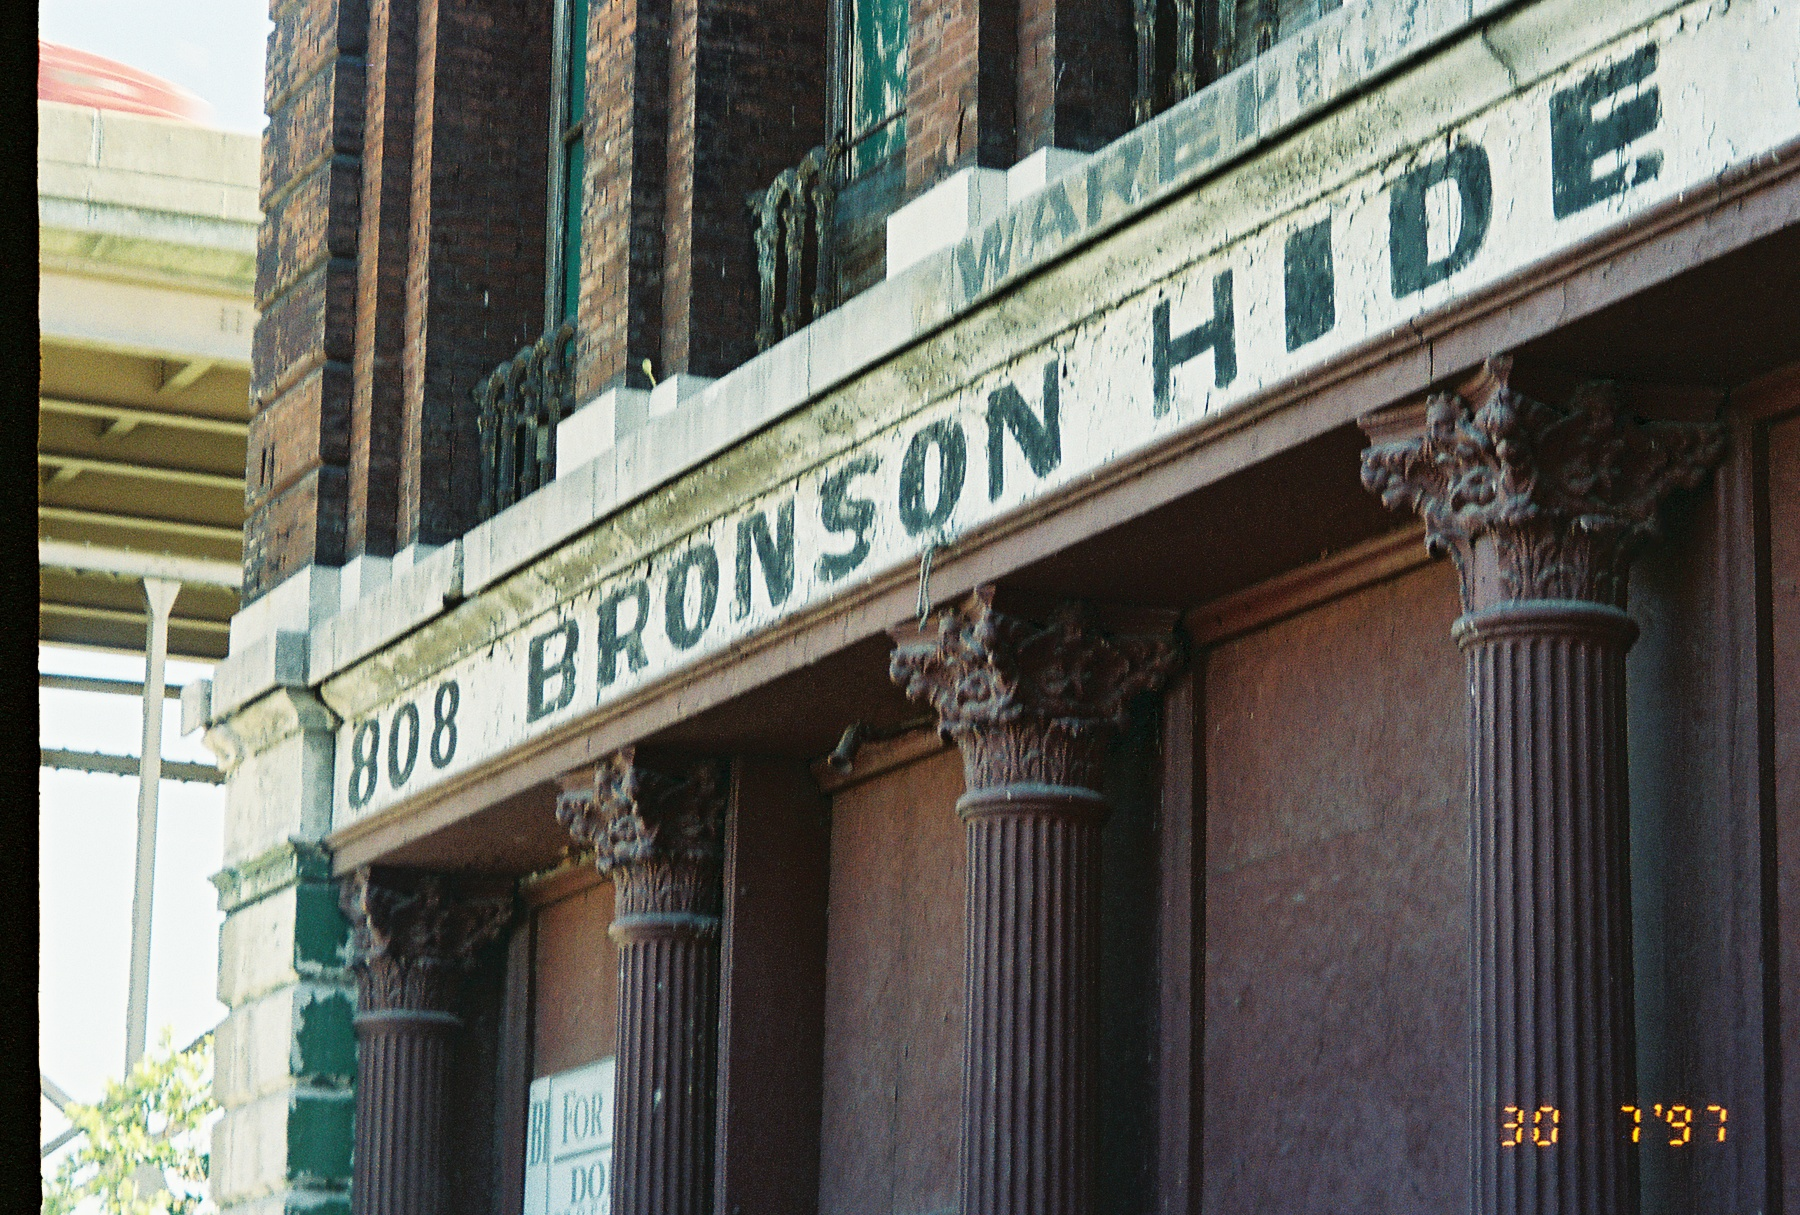 Iron Store front: Bronson Hide Building that once stood at 806 & 808 N. 1st. Street in St. Louis MO.